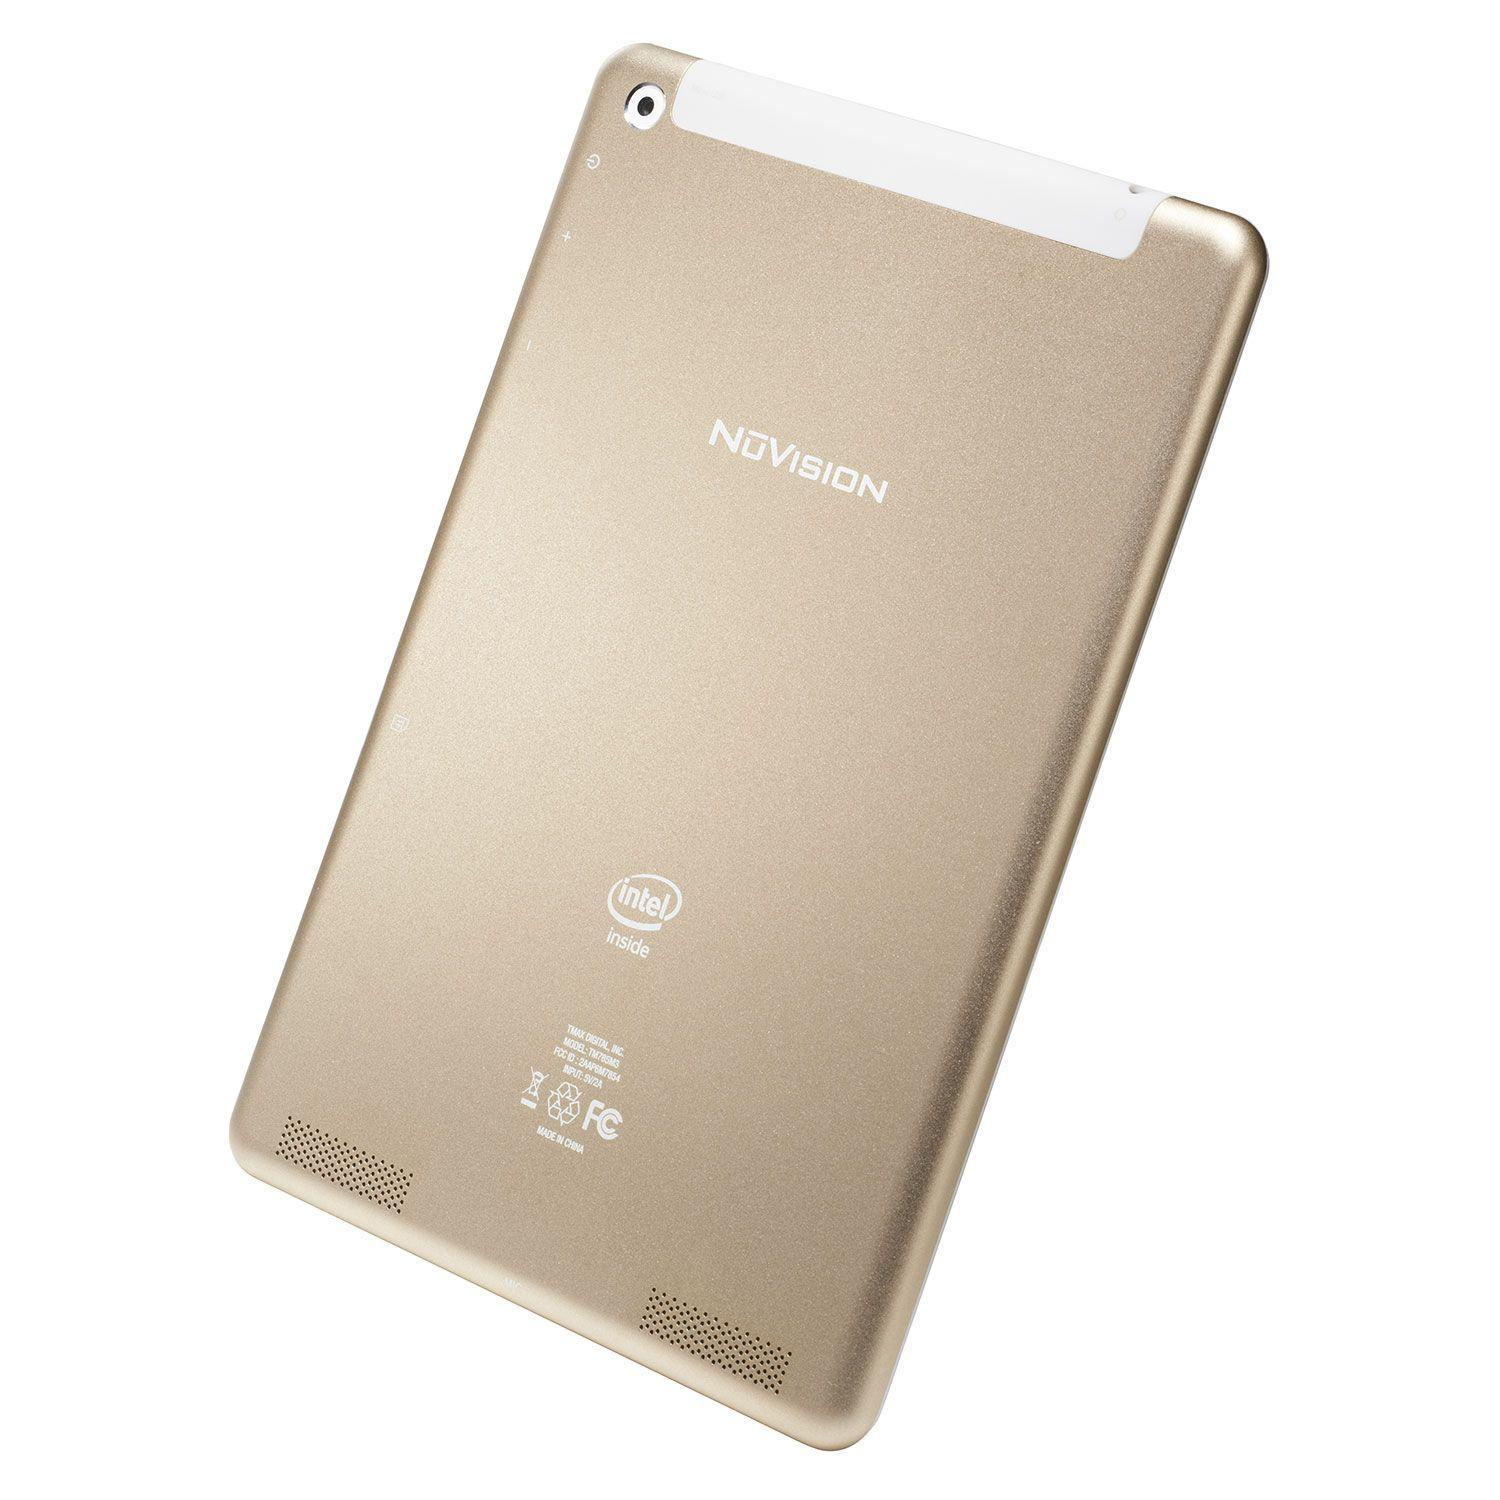 "Nuvision 7.85 - 7.9"" 16 GB  - Champagne"